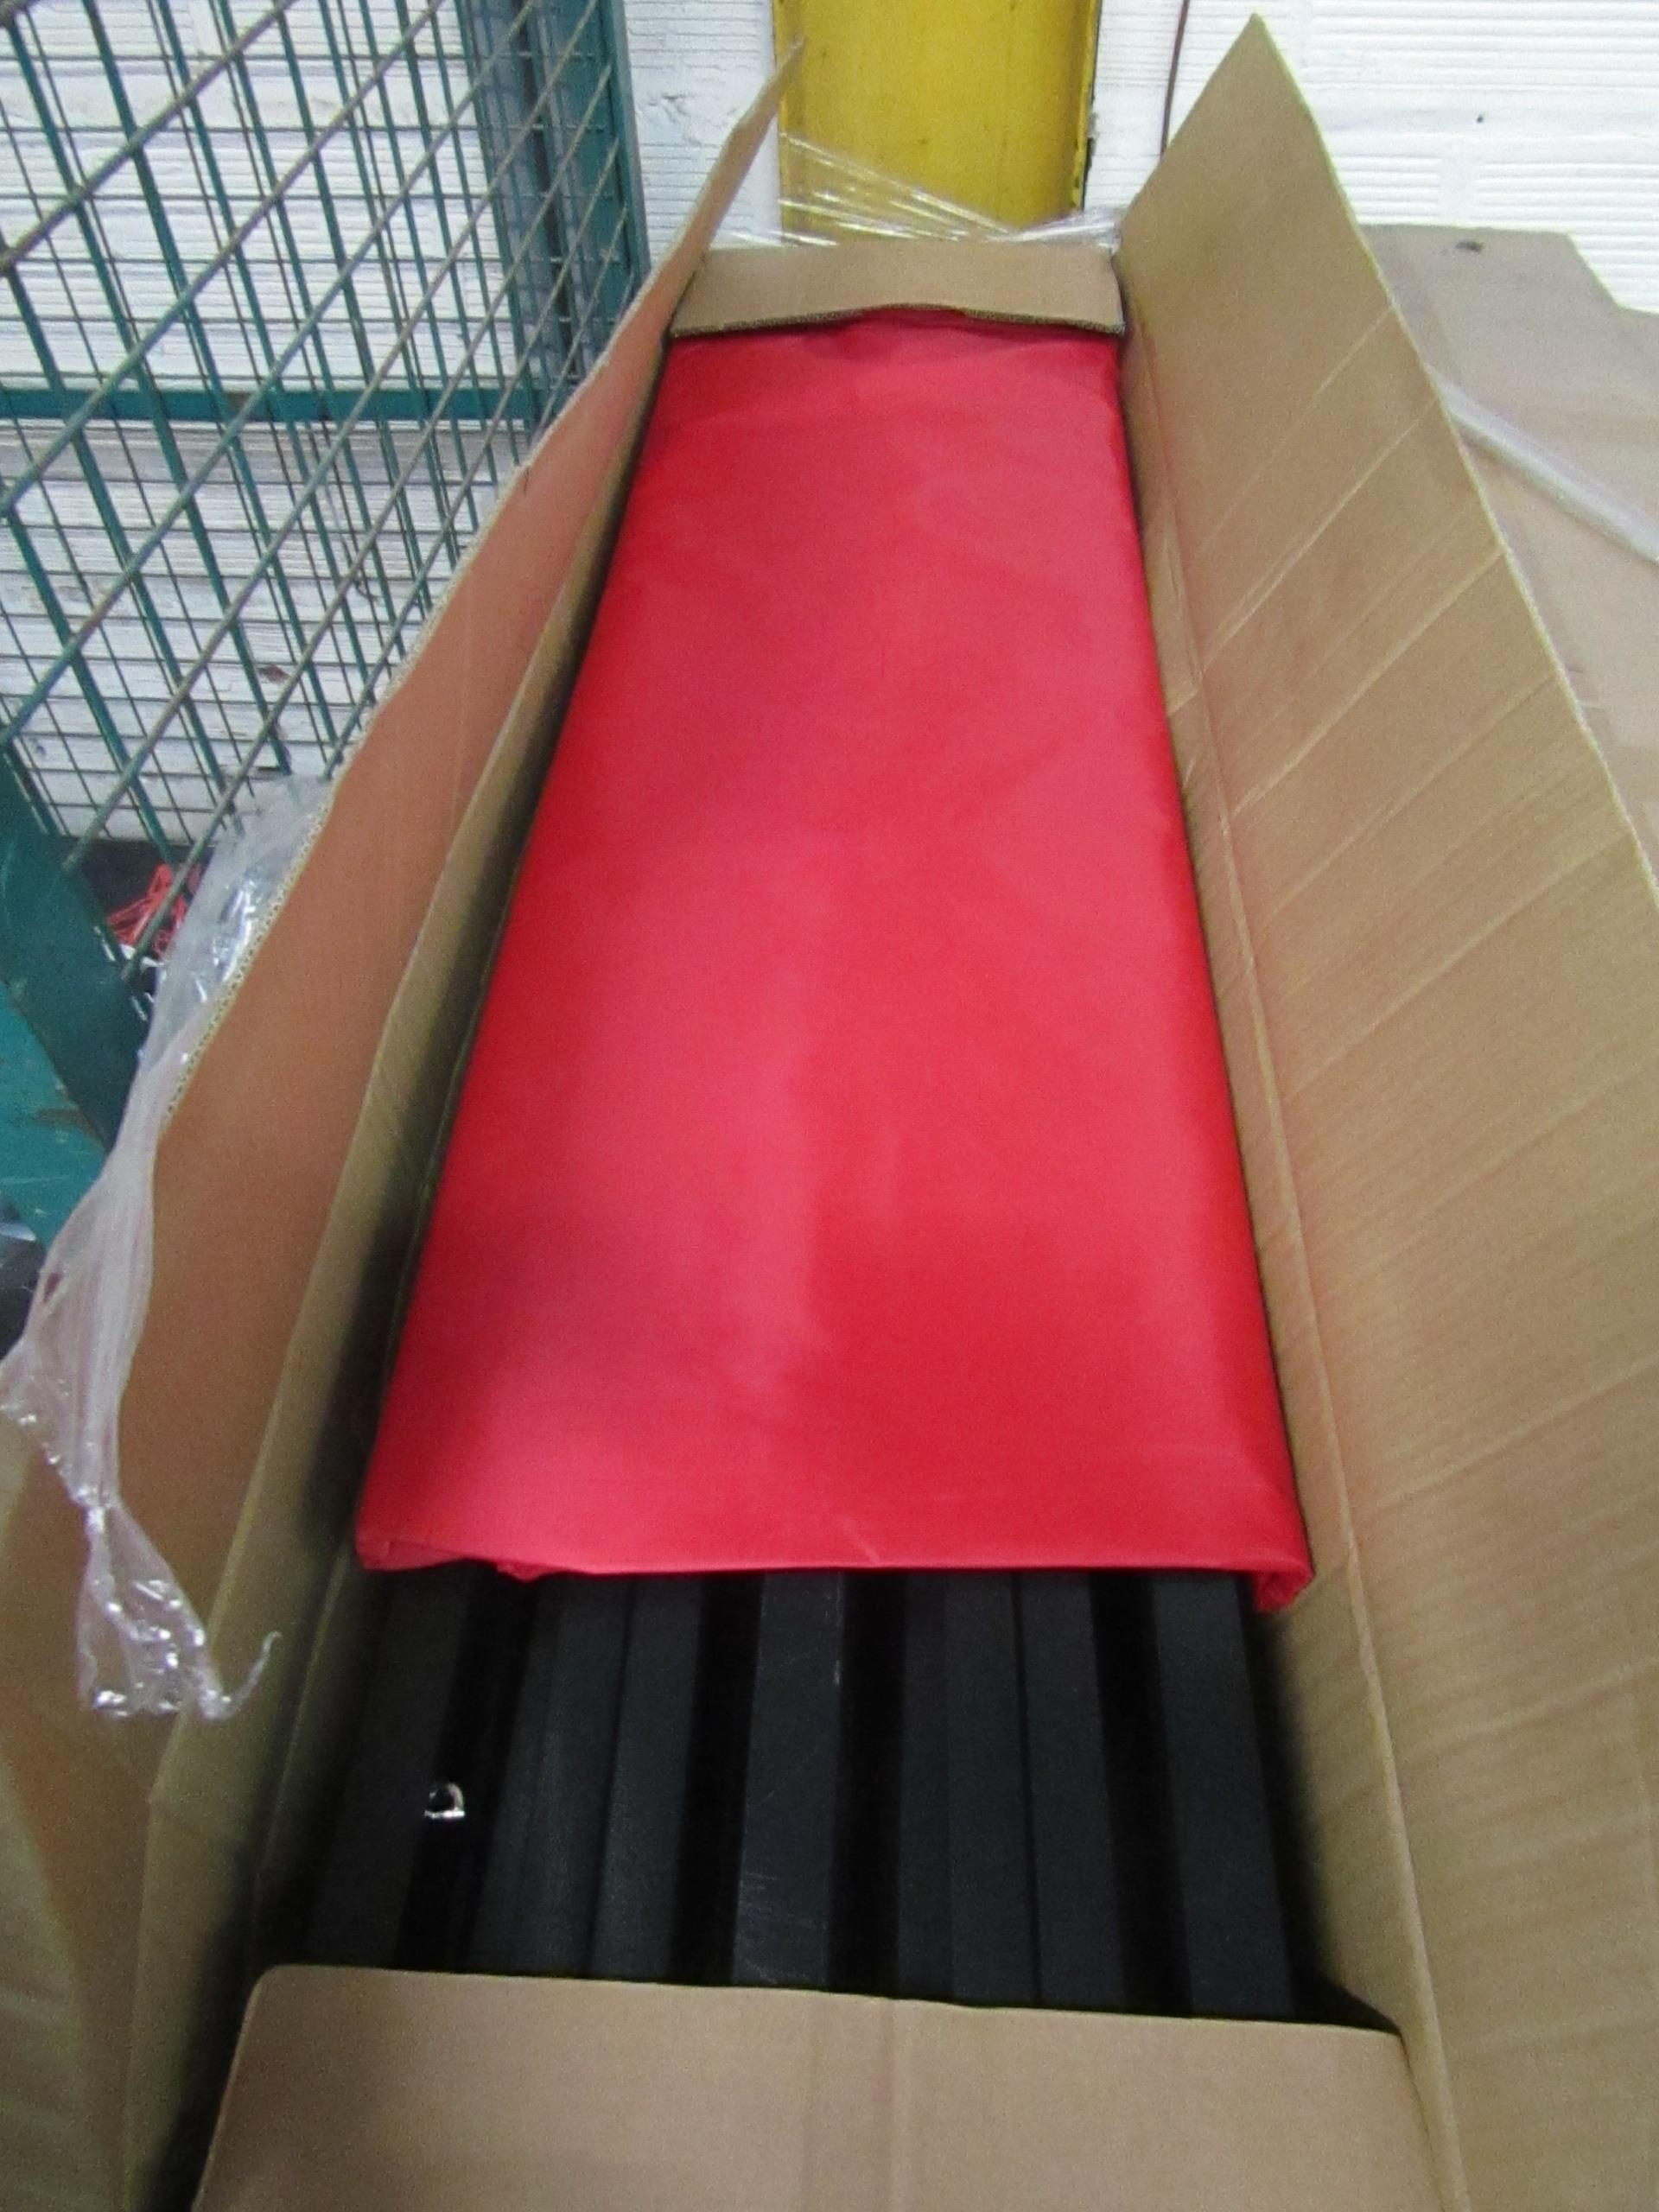 Lot 60 - 6 m x 3 m pop up gazebo with red cover, new and boxed